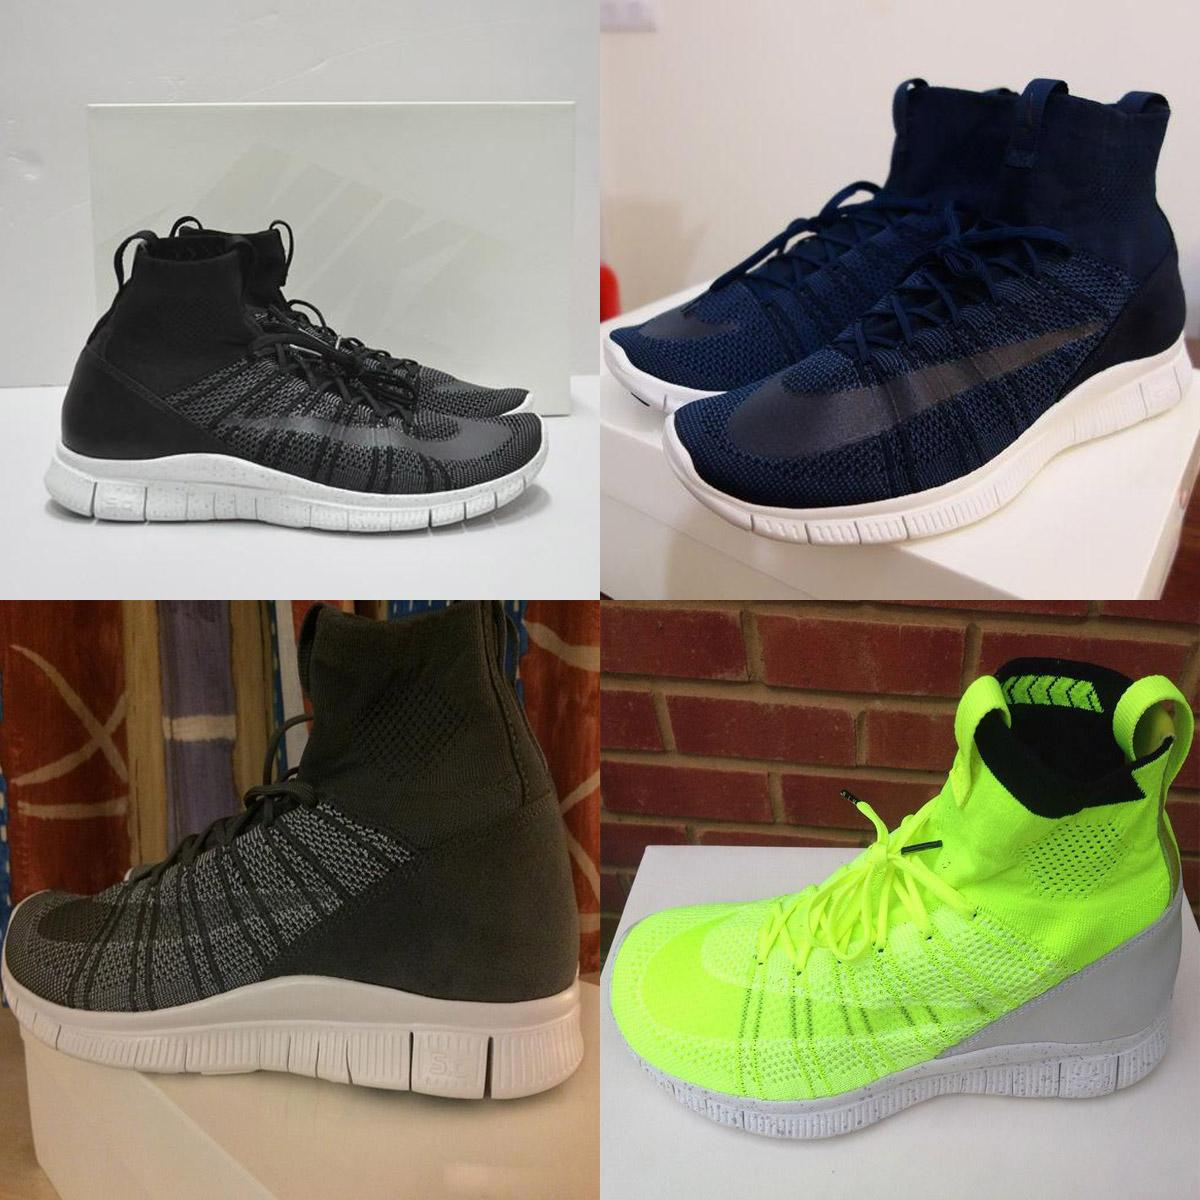 new products 12613 1cb93 Nike Free Mercurial Superfly Flyknit SP Dark Obsidian HTM Volt 5.0 Black  Dark Blue Grey Green Mens Running Shoes Boots Men Sneakers Trail Shoes Shoes  ...